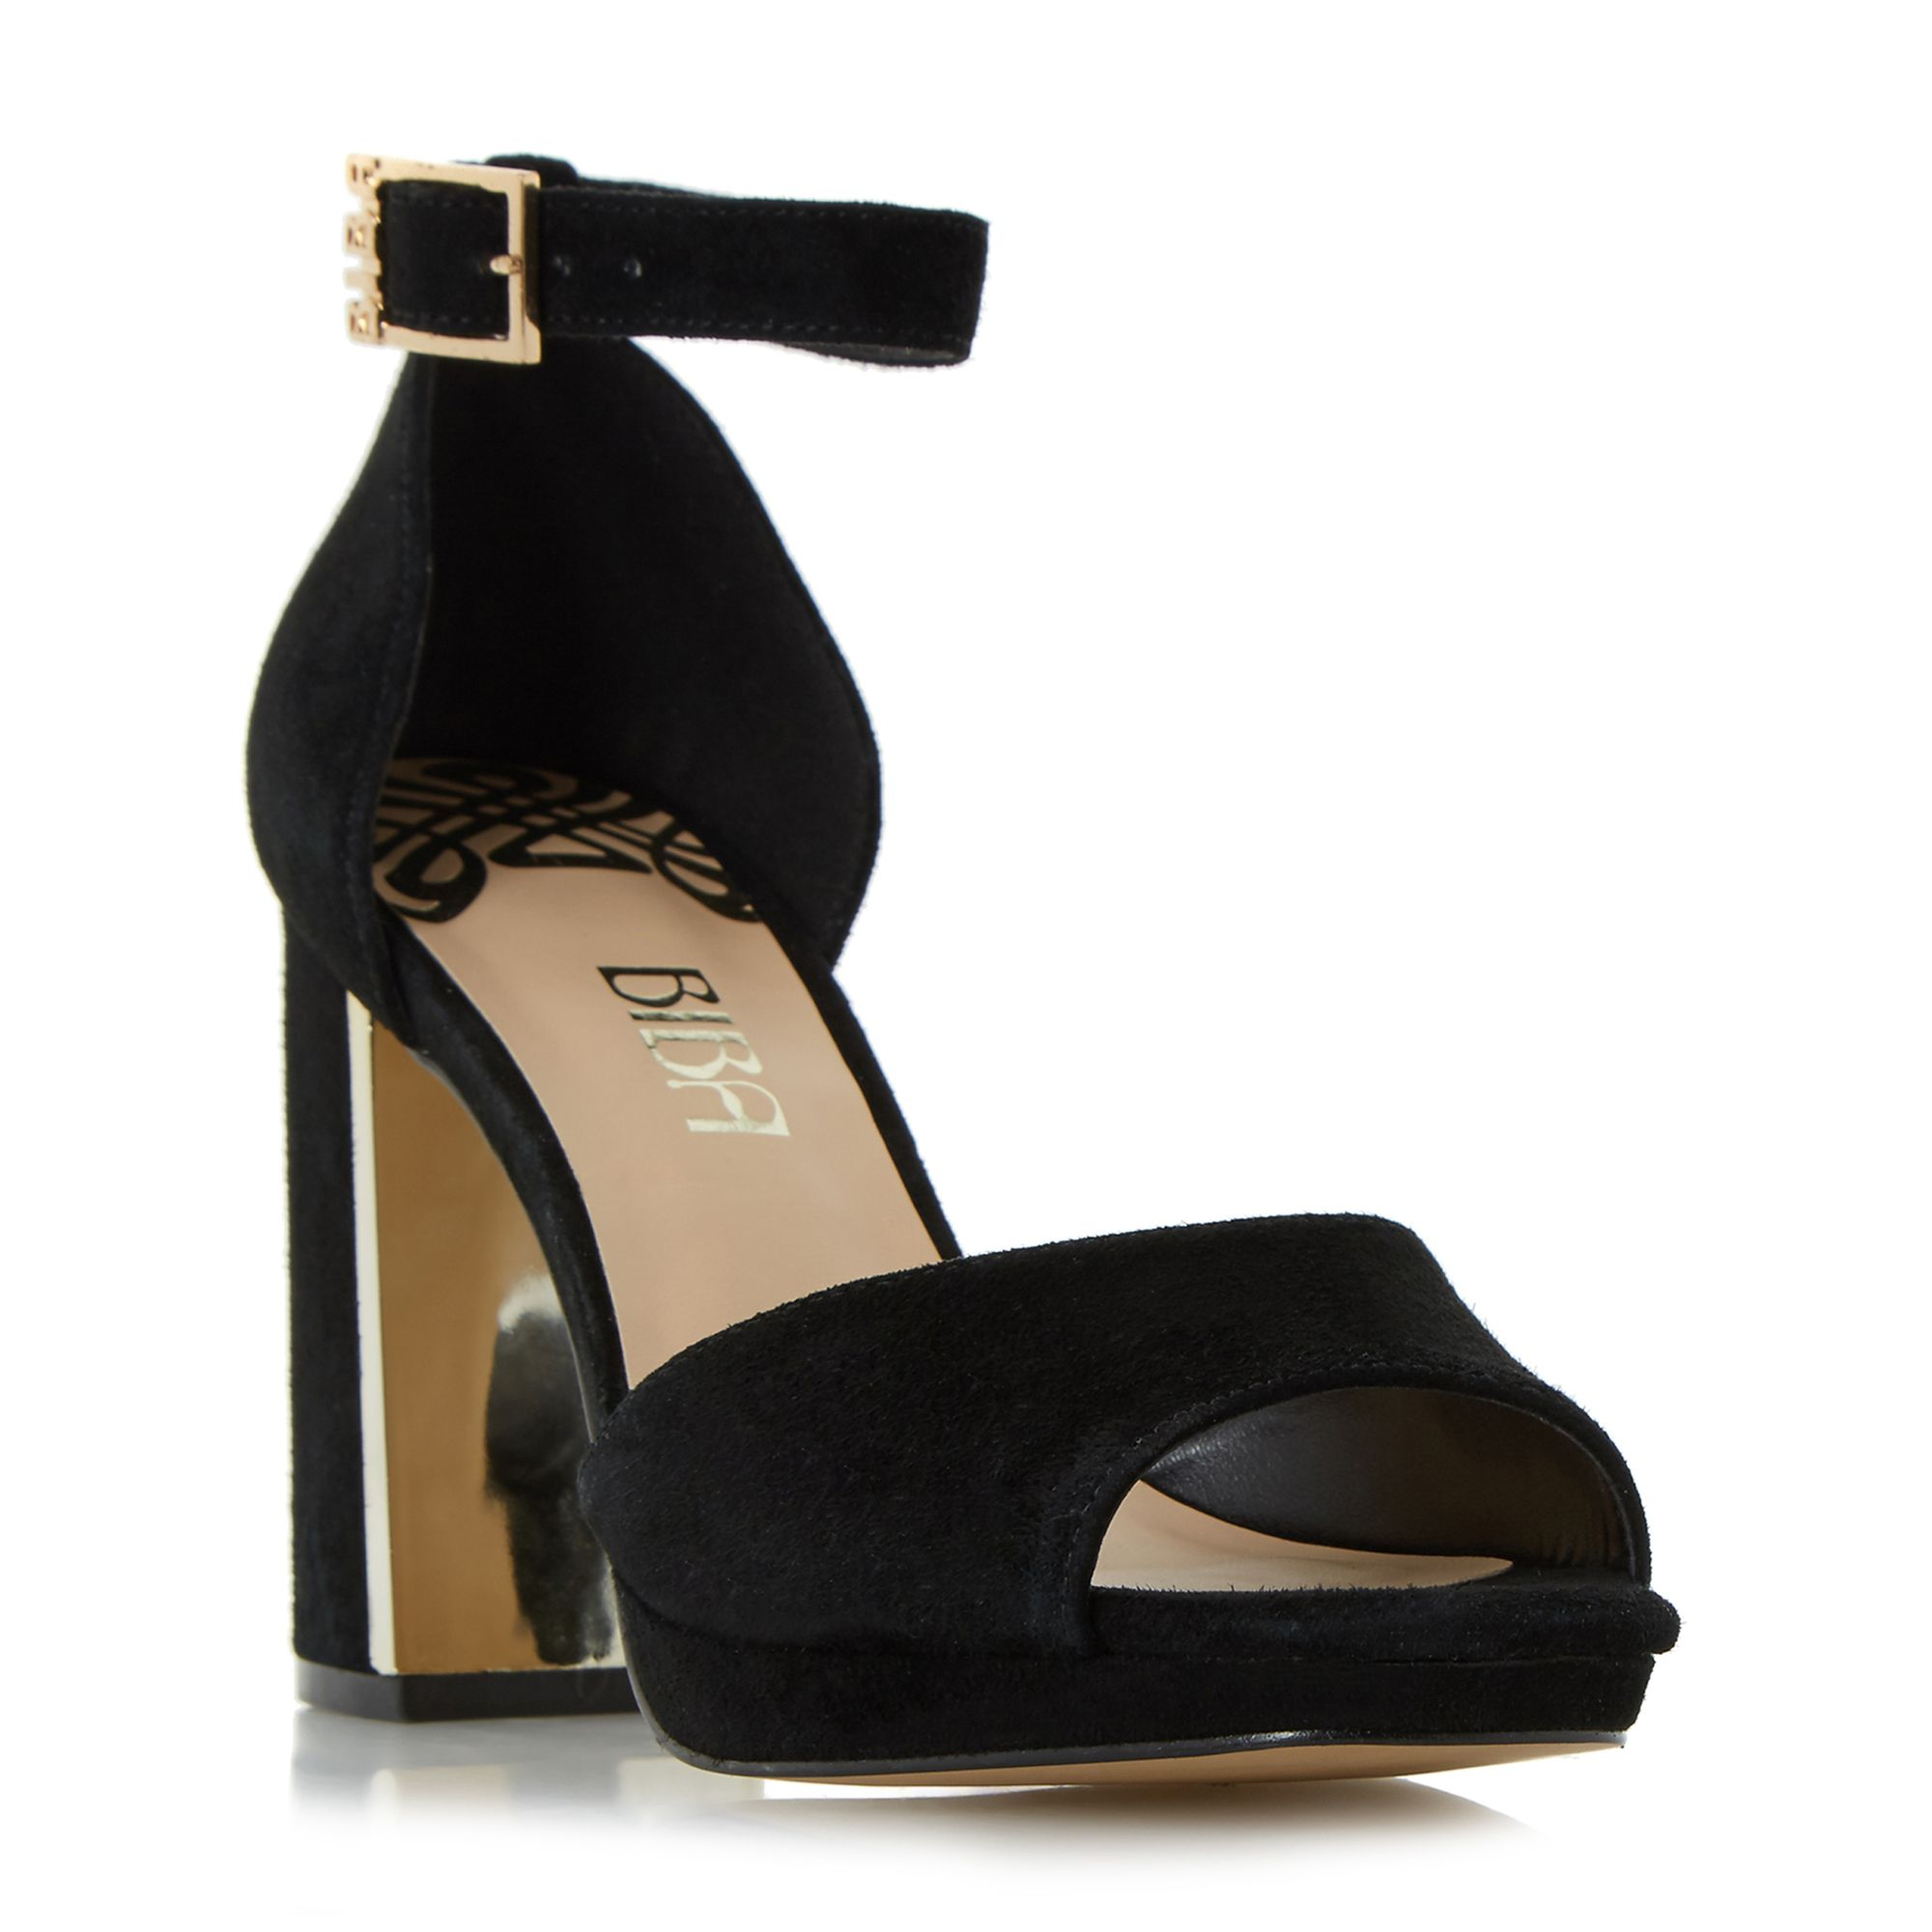 Biba Biba Mable platform dressy sandals, Black